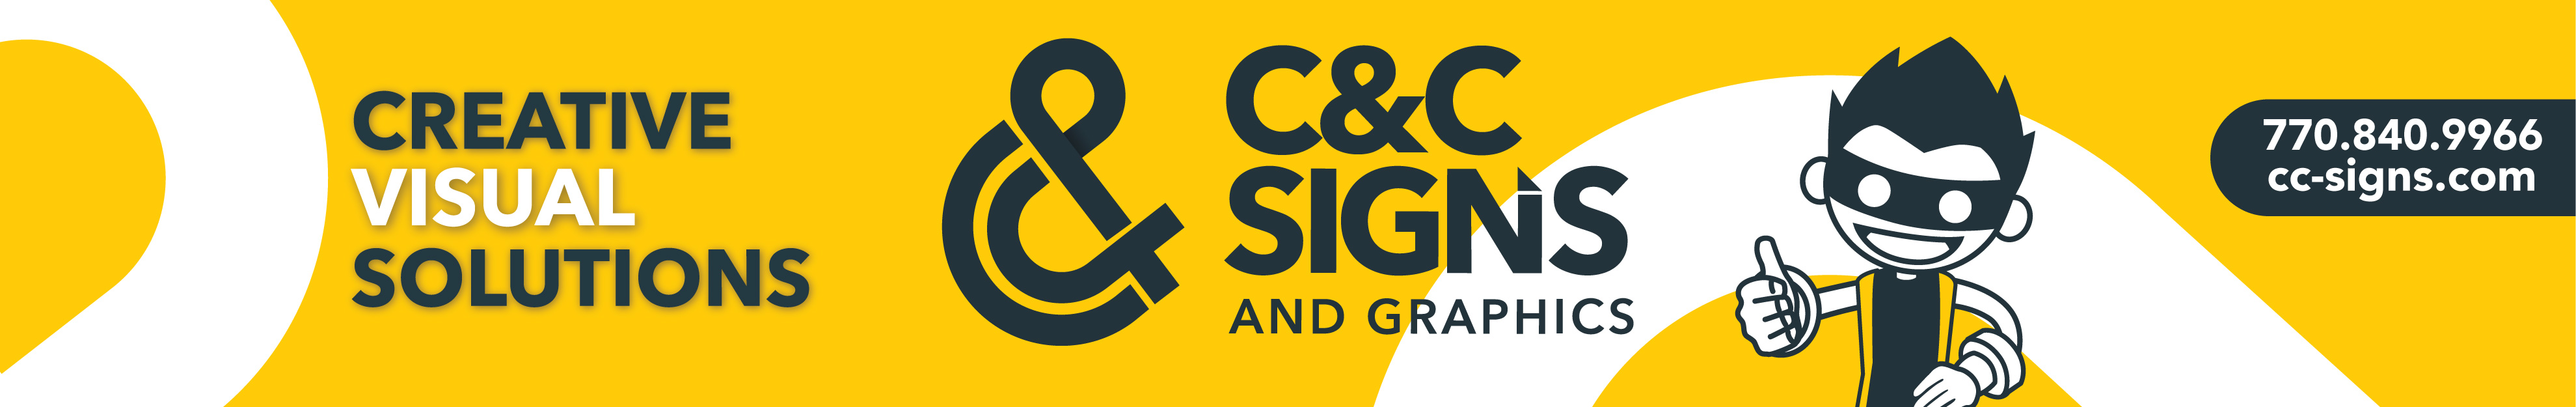 C&C Signs Banner GHCA -01